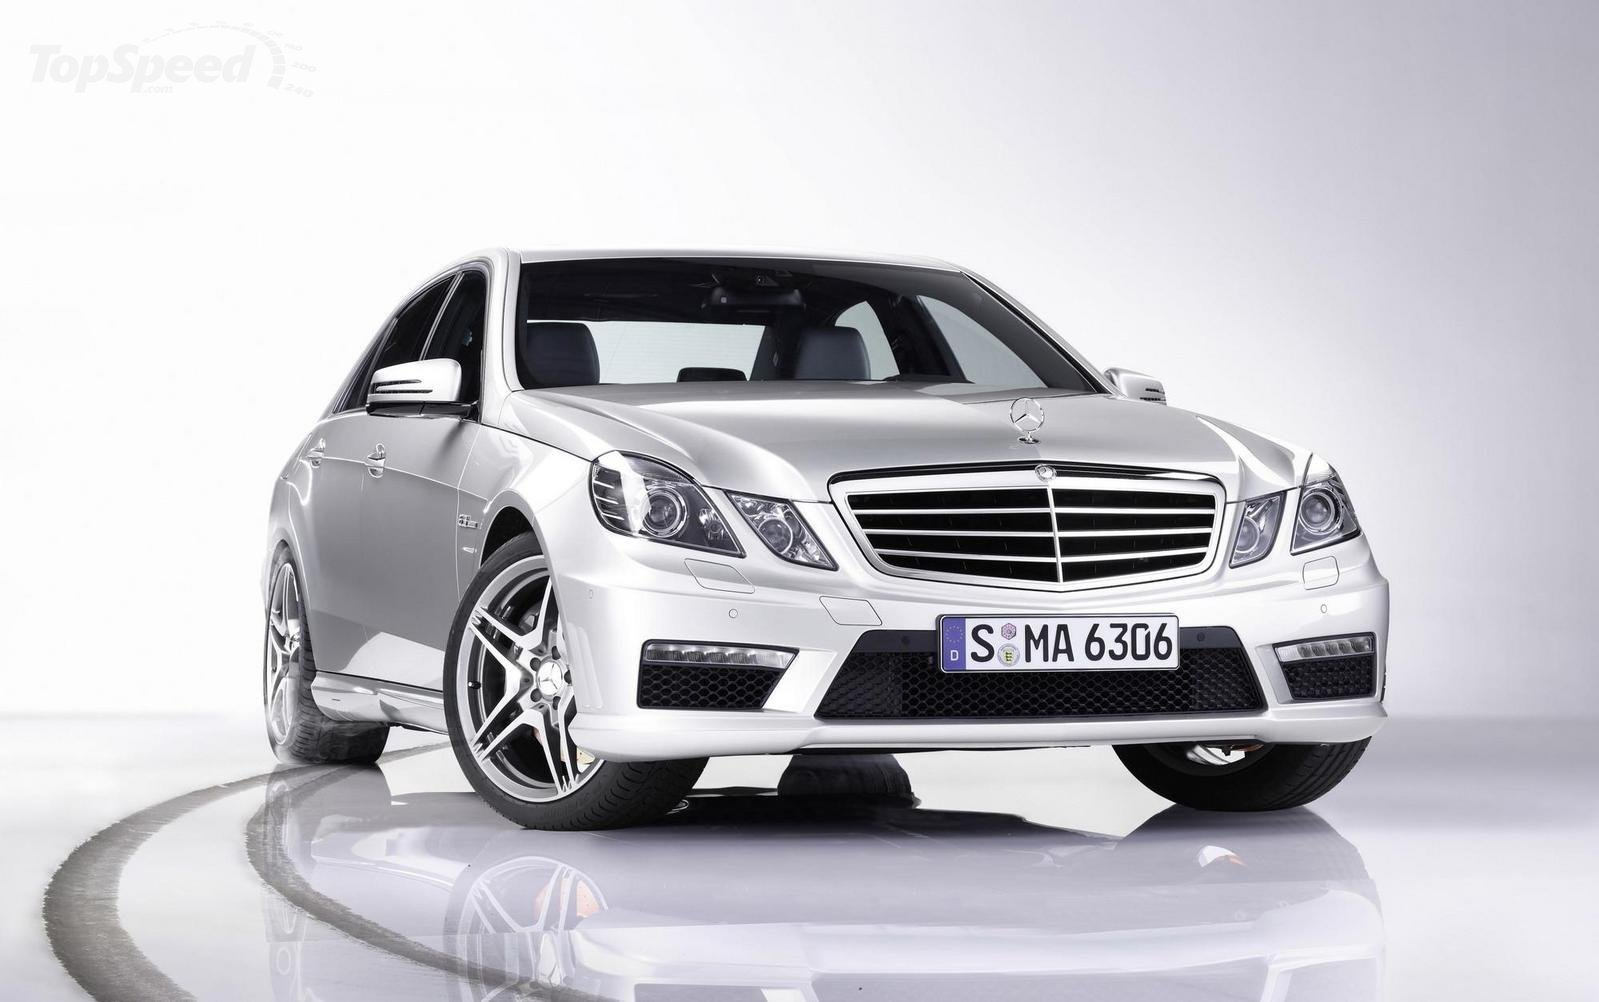 Speedo car new mercedes collections 2010 new cars car for Motor trend new cars